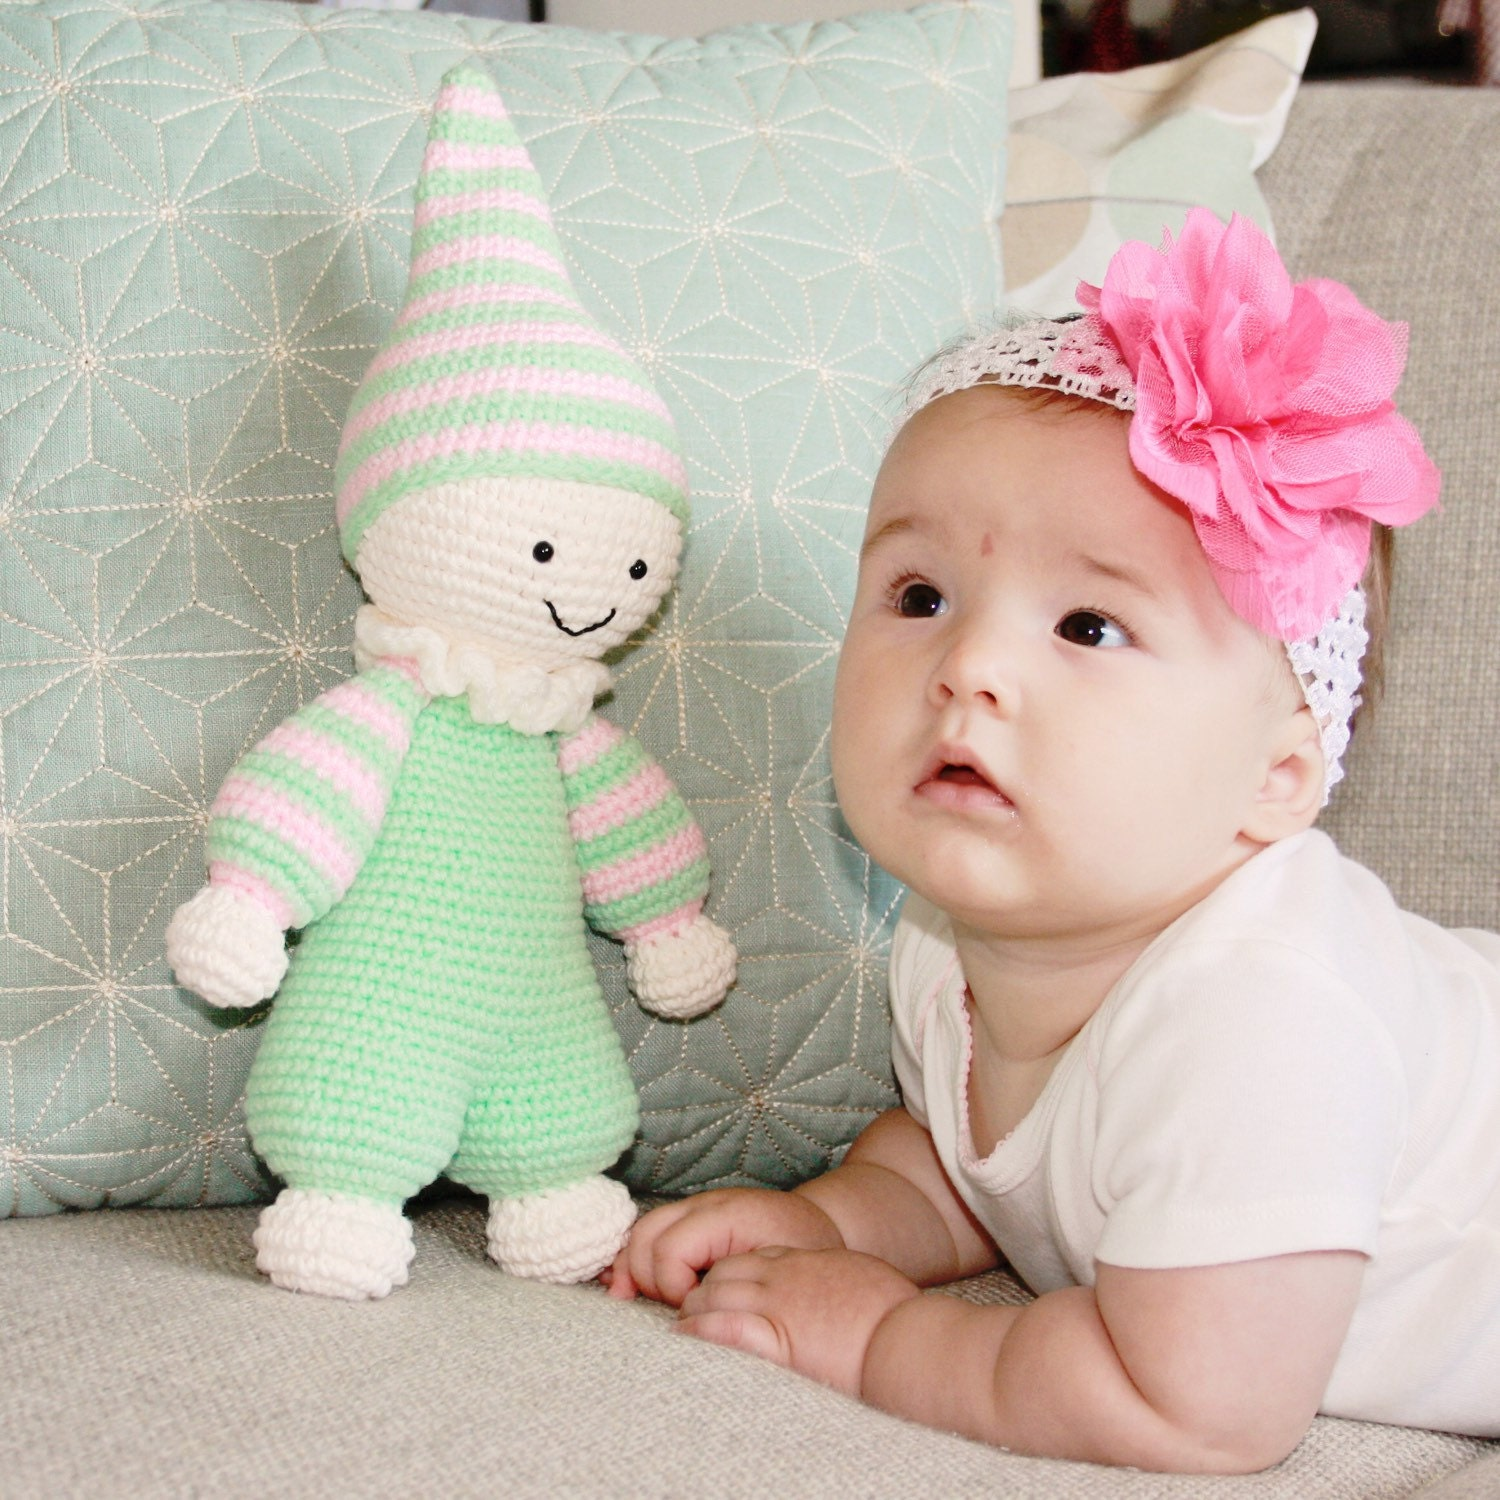 Baby Plush Toys : Crochet stuffed baby toy amigurumi plush